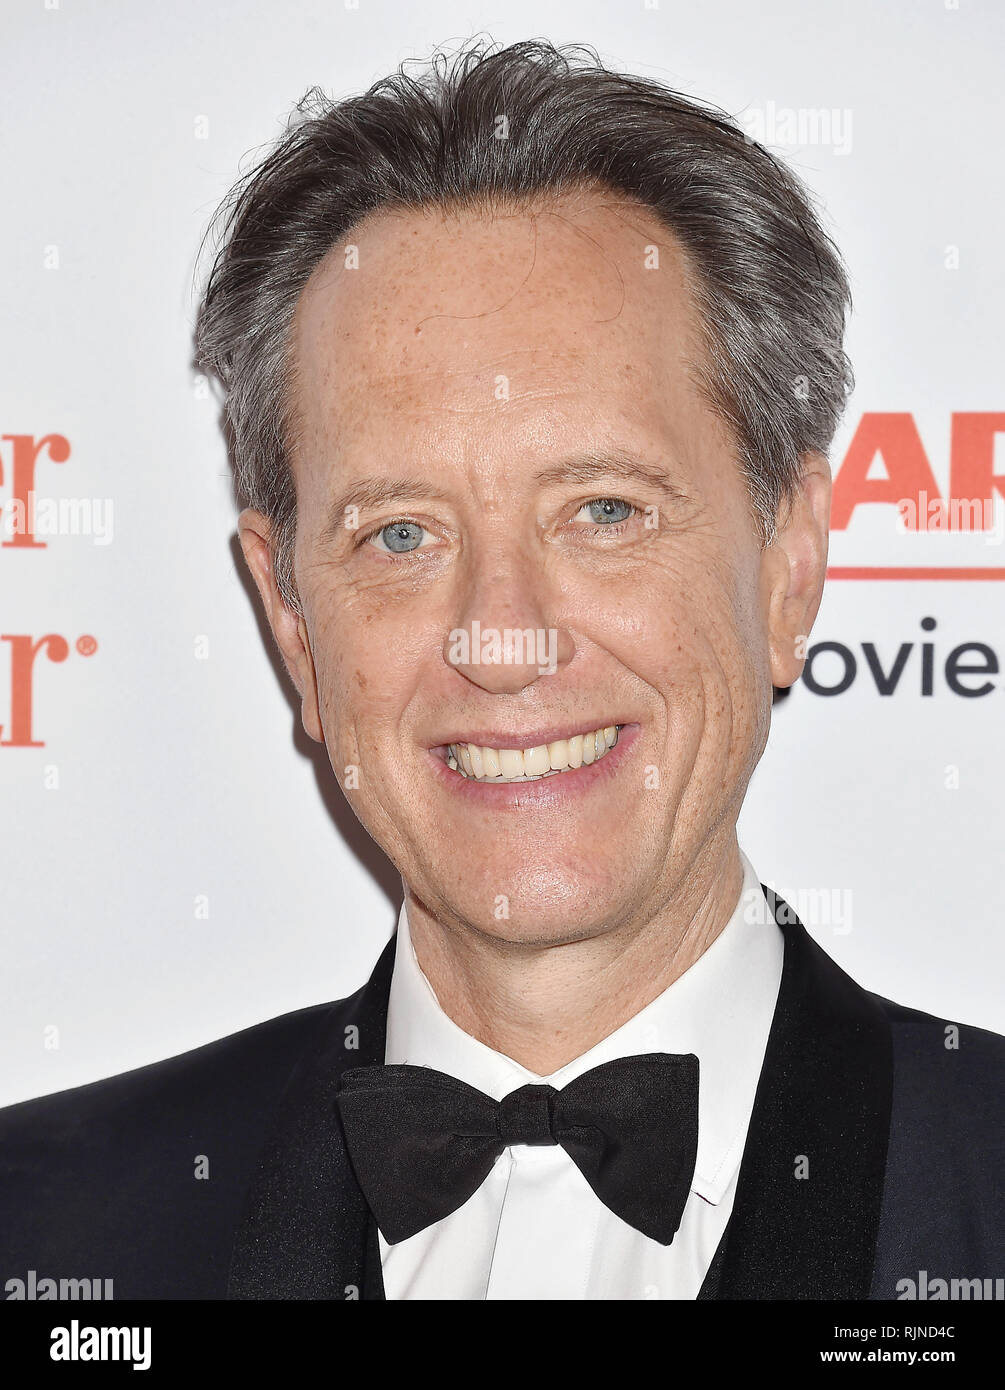 RICHARD E. GRANT at the 18th Annual AARP The Magazine's Movies For Grownups Awards at the Beverly Wilshire Four Seasons Hotel on February 04, 2019 in Beverly Hills, California.  Photo: Jeffrey Mayer - Stock Image